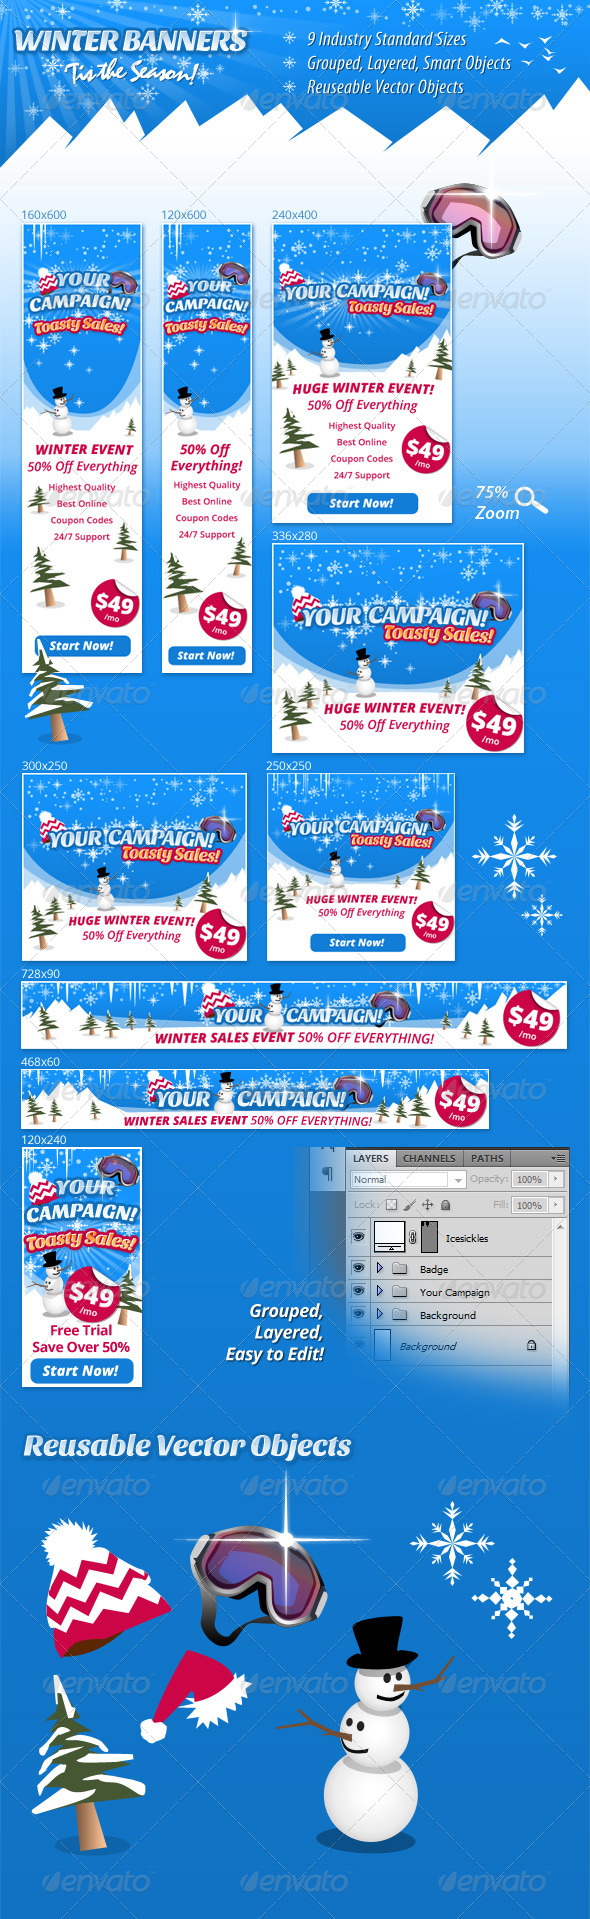 GraphicRiver Winter Banners 6372647